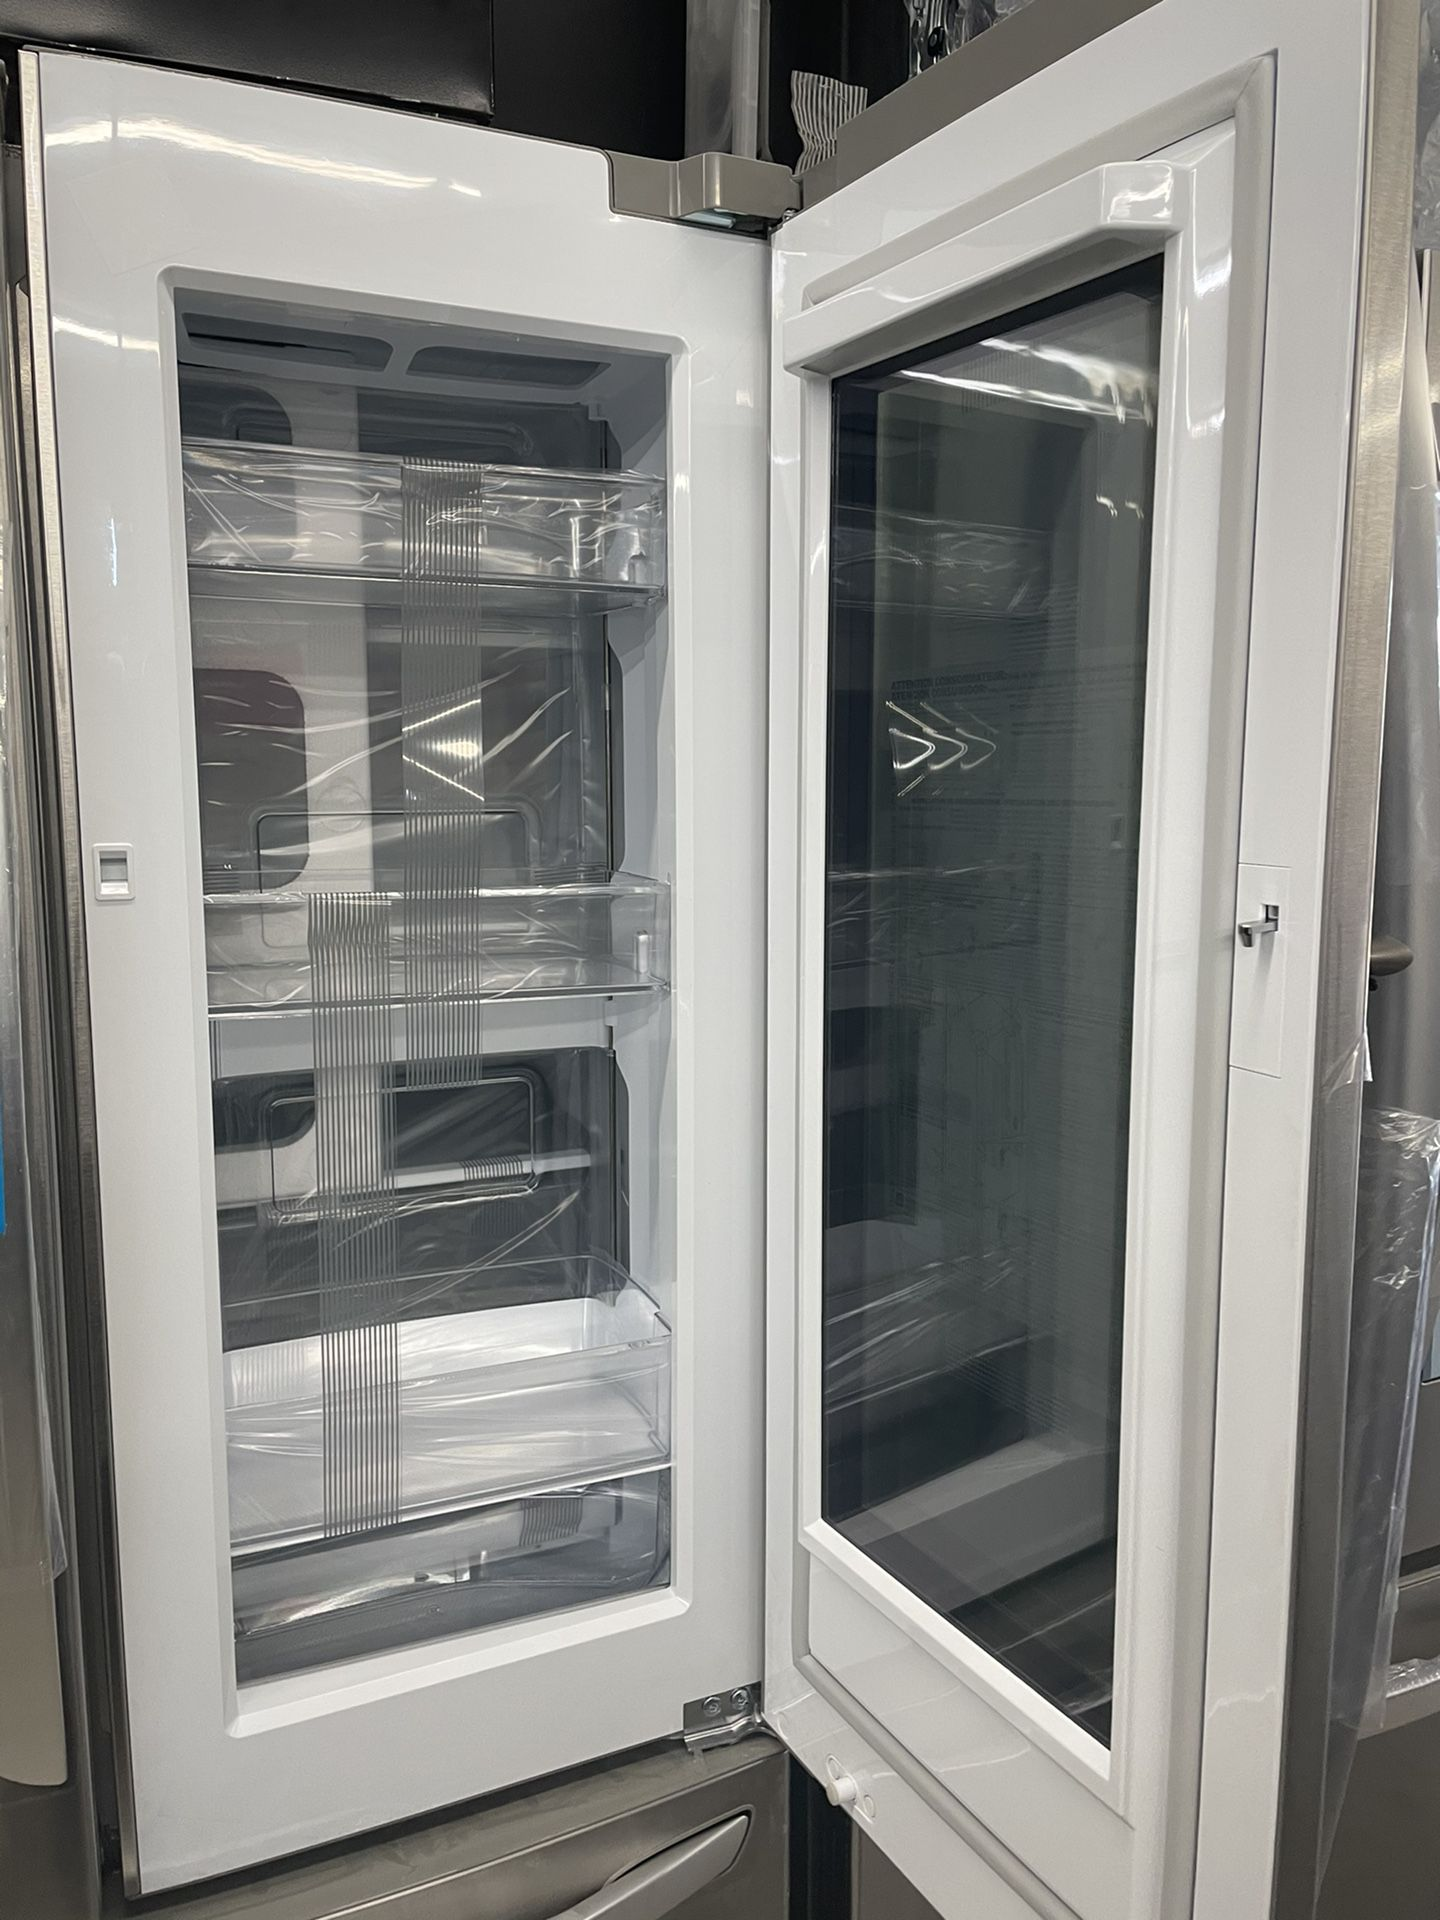 LG COUNTER DEPTH FRENCH DOOR STAINLESS STEEL REFRIGERATOR